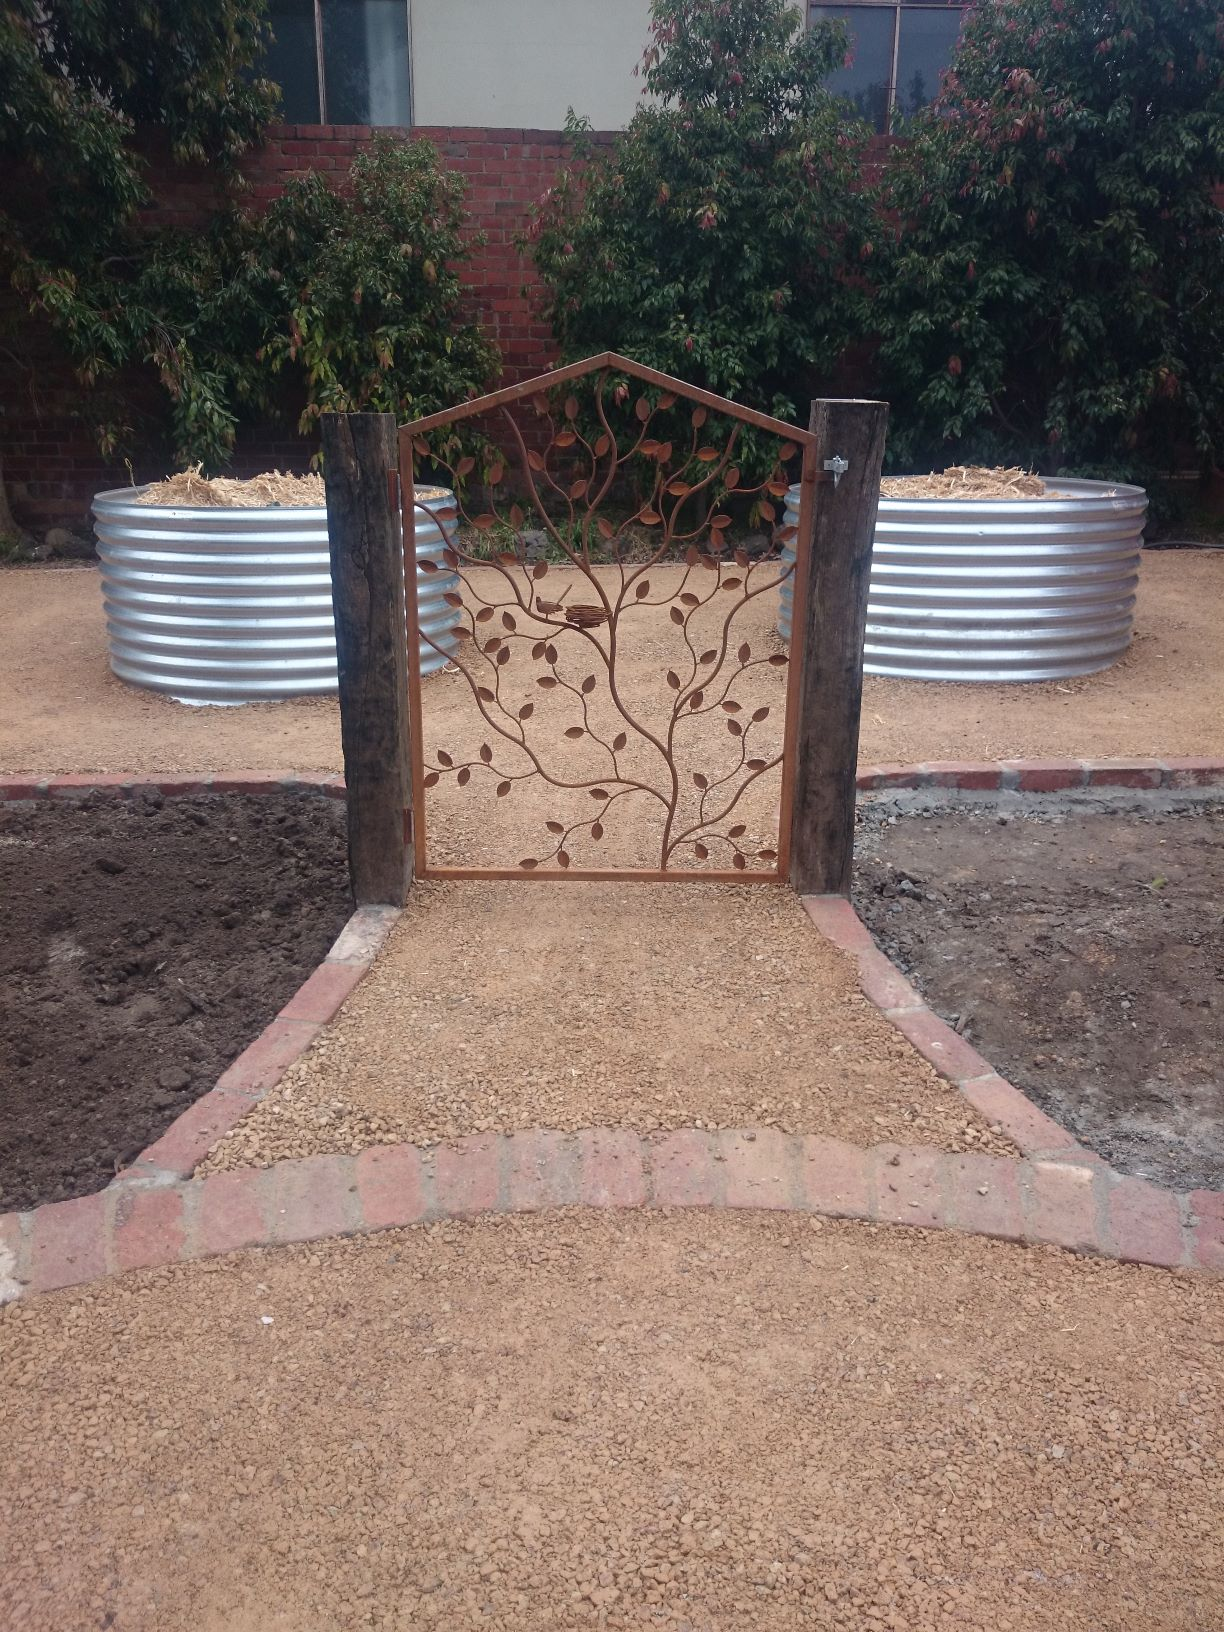 Country / Rustic style garden, Garden designed for kids, garden for chooks, veggie garden, Compacted Crushed sandstone, Corrigated Iron veggie beds, Up right railway sleepers, second hand red bricks, overwrought gate,